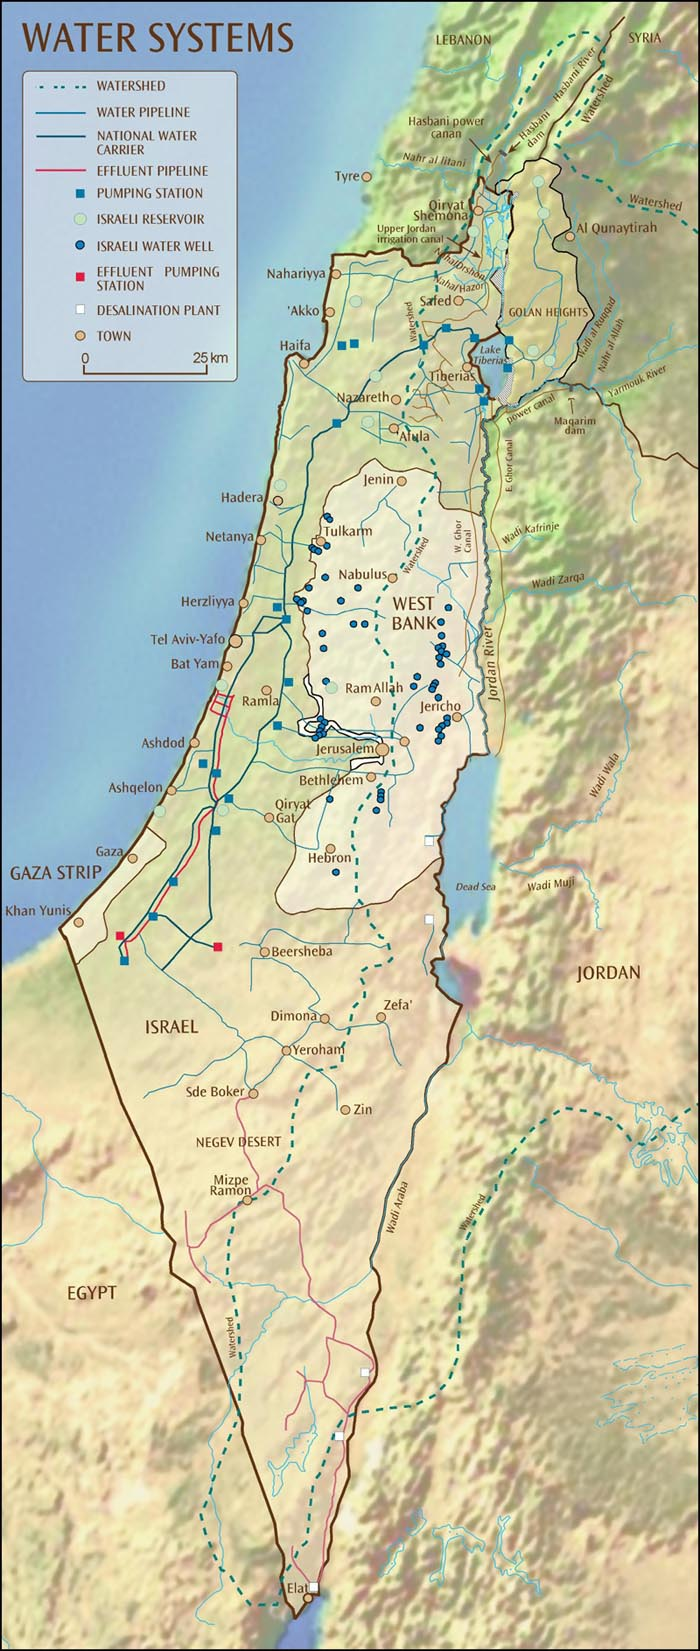 The Middle East Maps Israels Water Systems